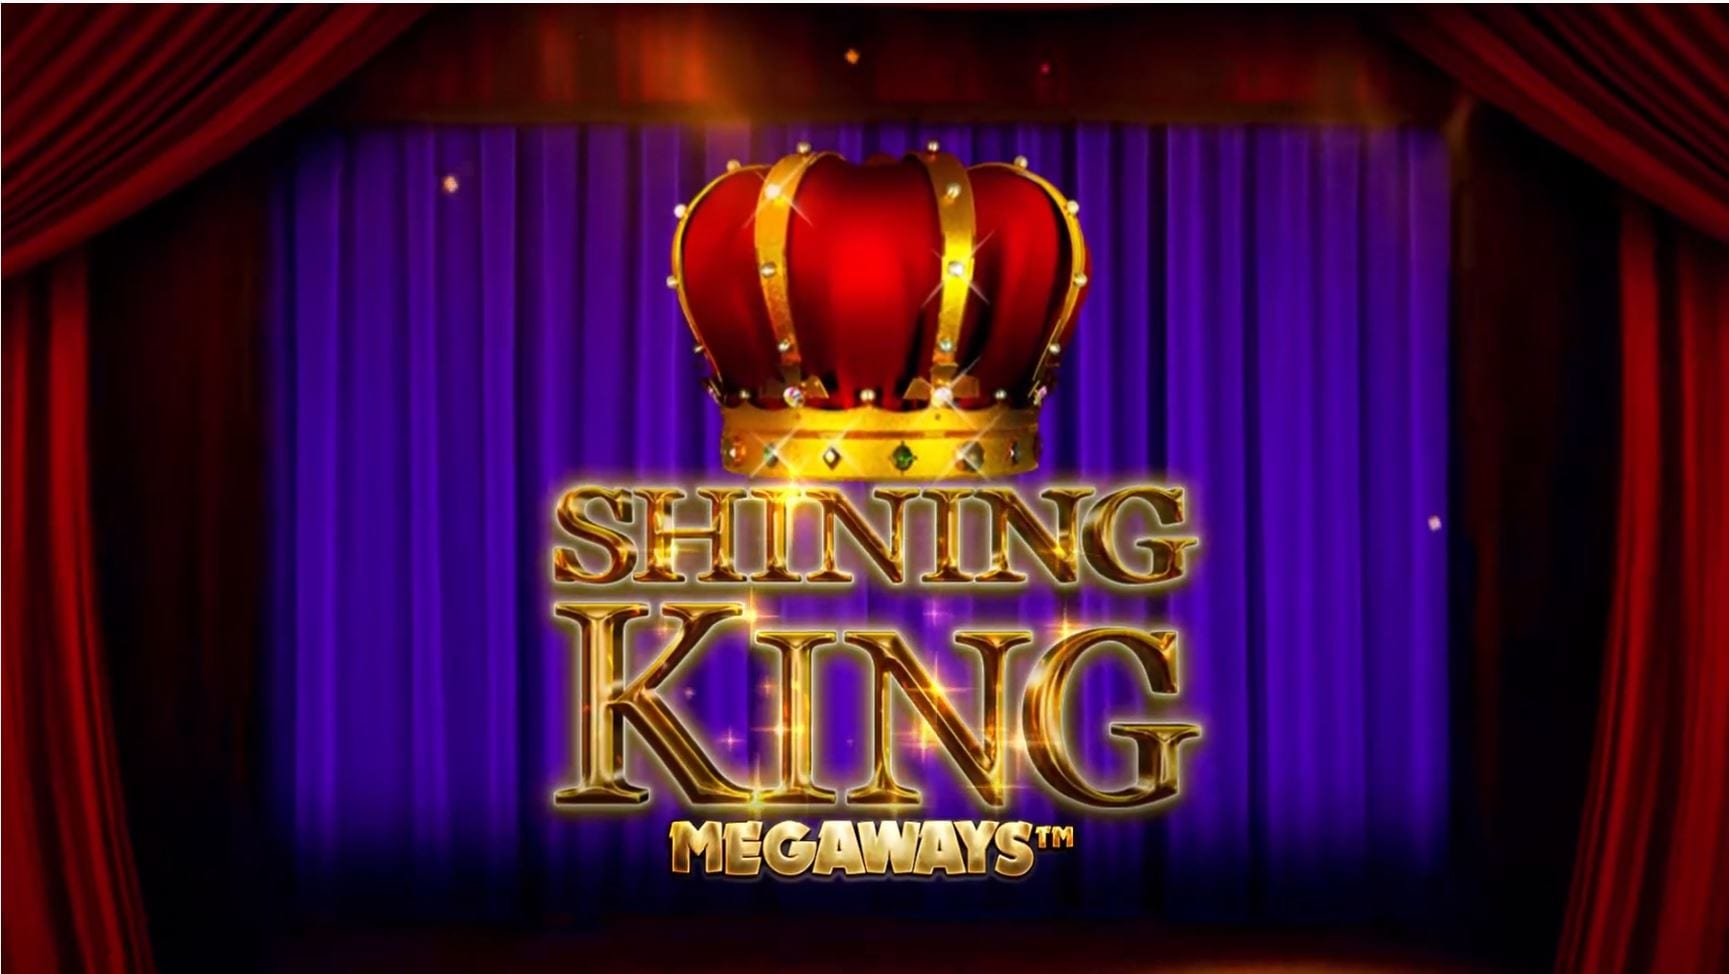 shining kings megaways slot by isoftbet